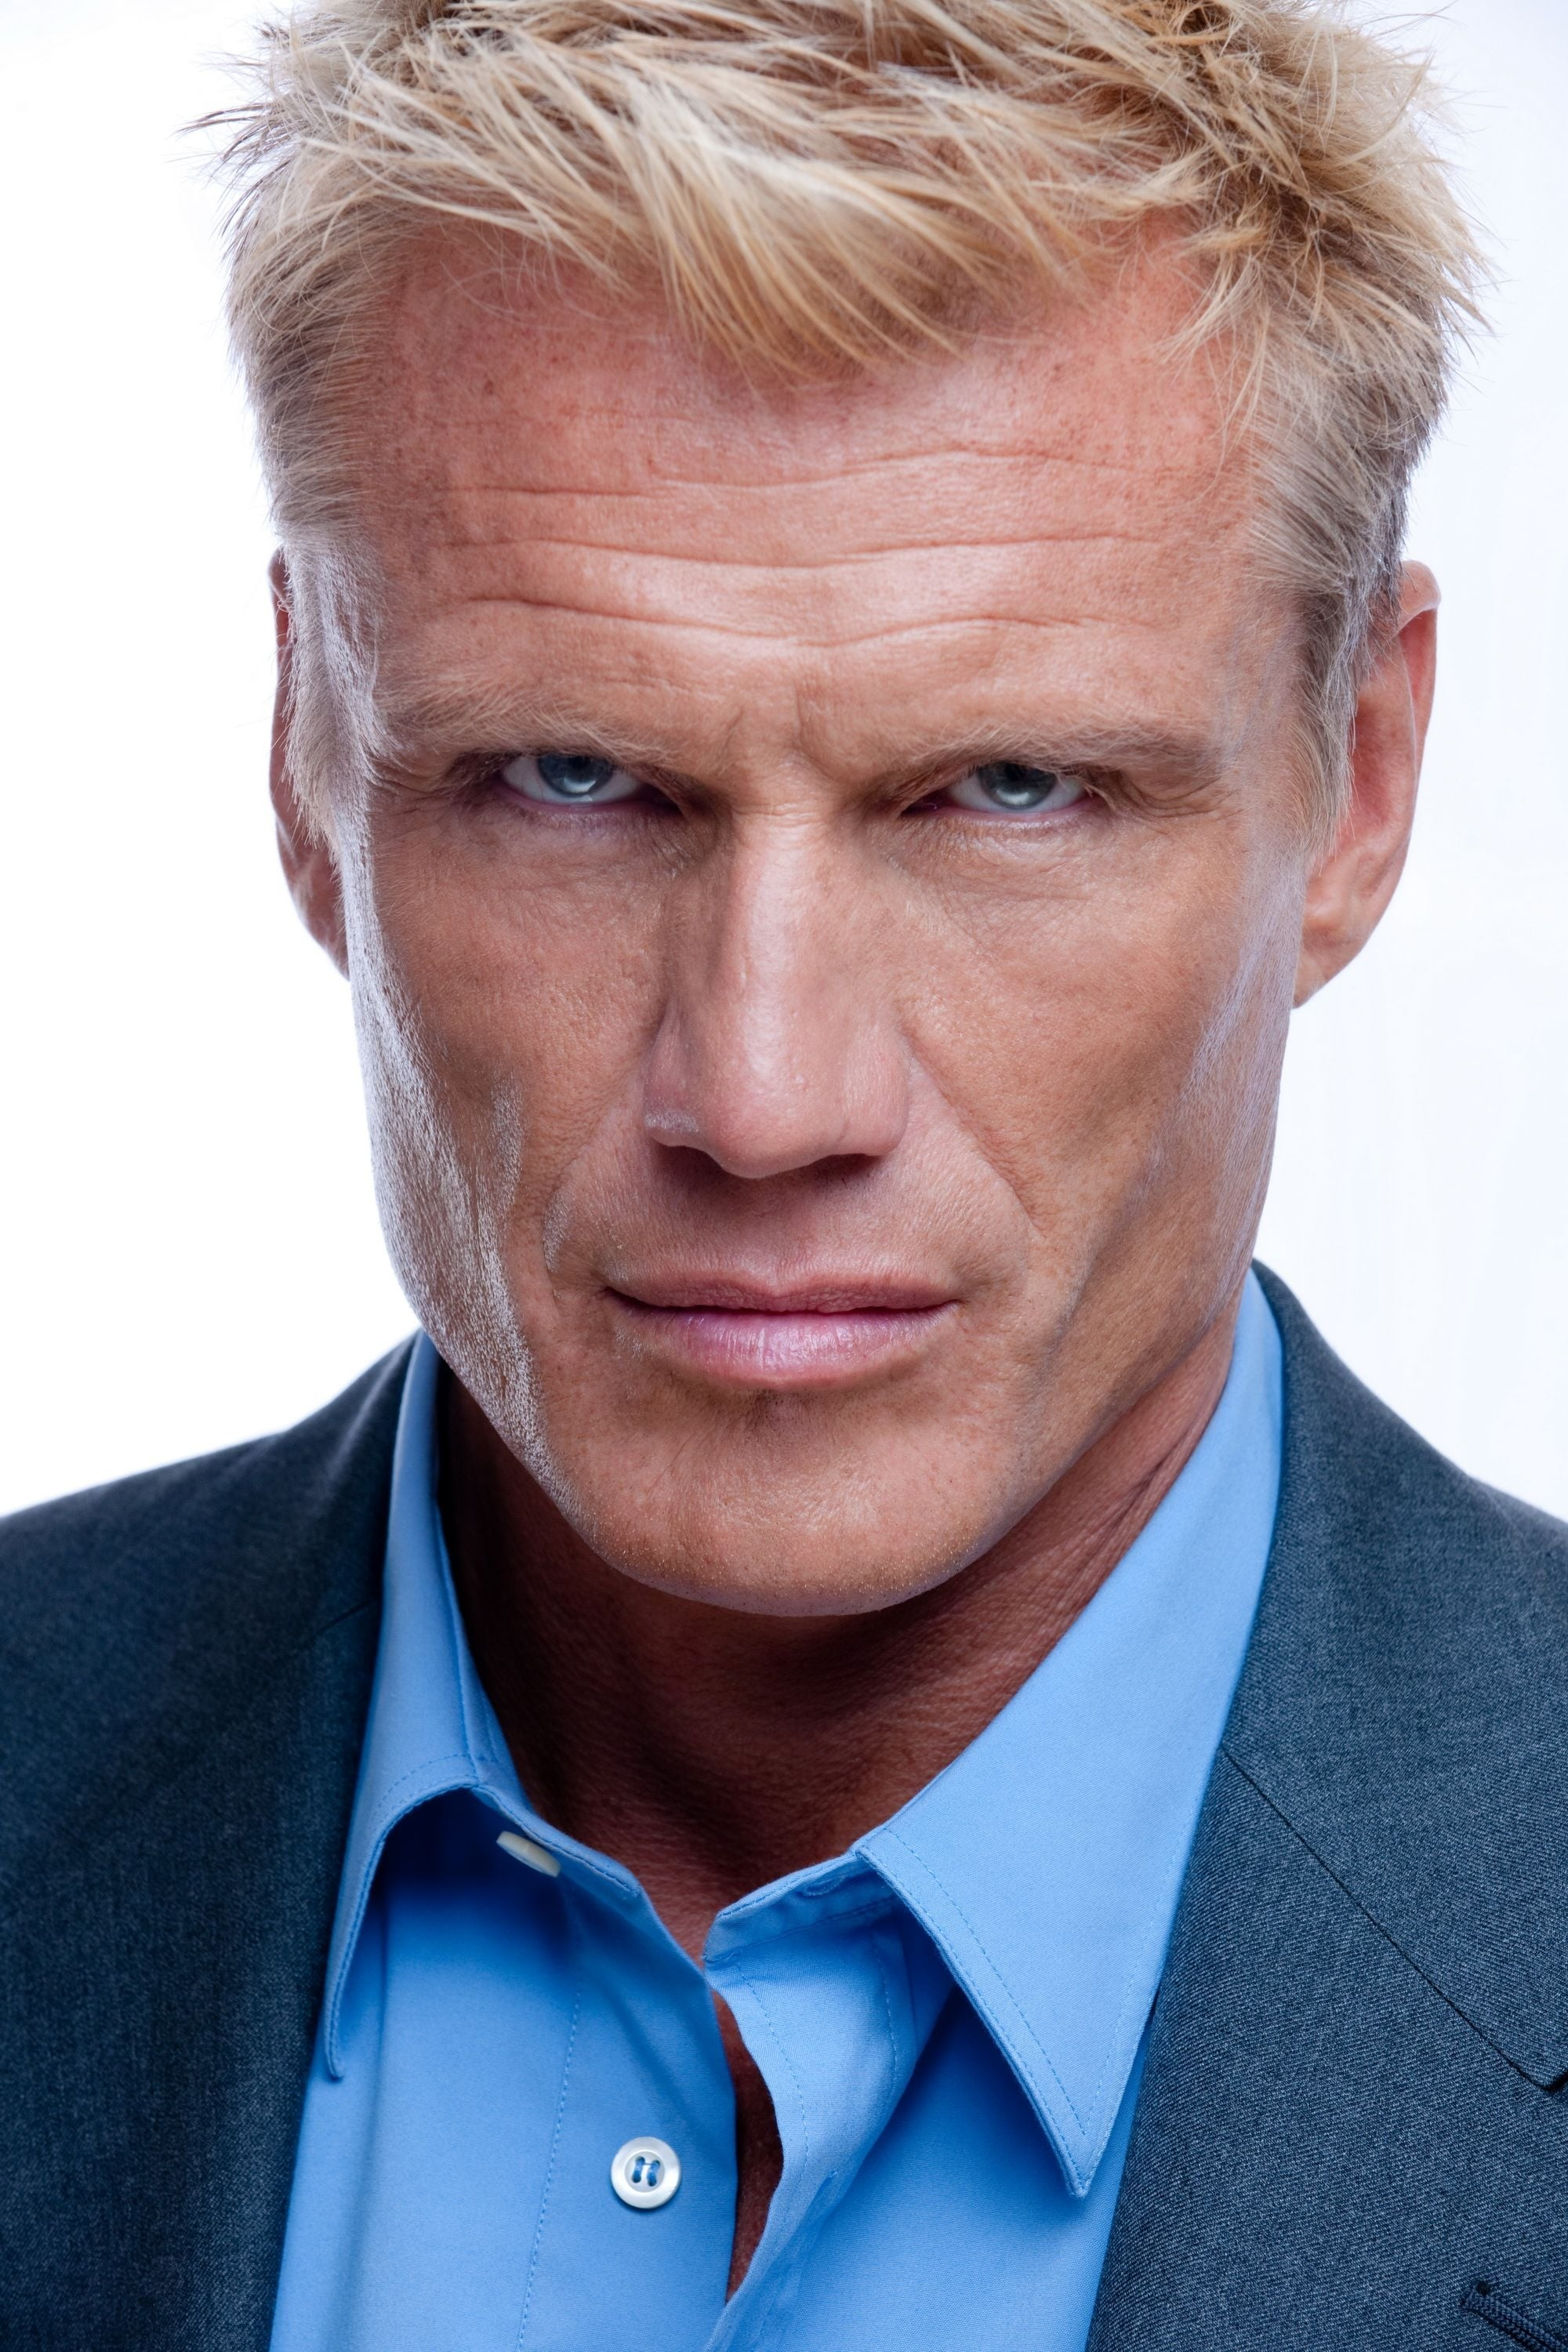 Dolph Lundgren - Profile Images — The Movie Database (TMDb)